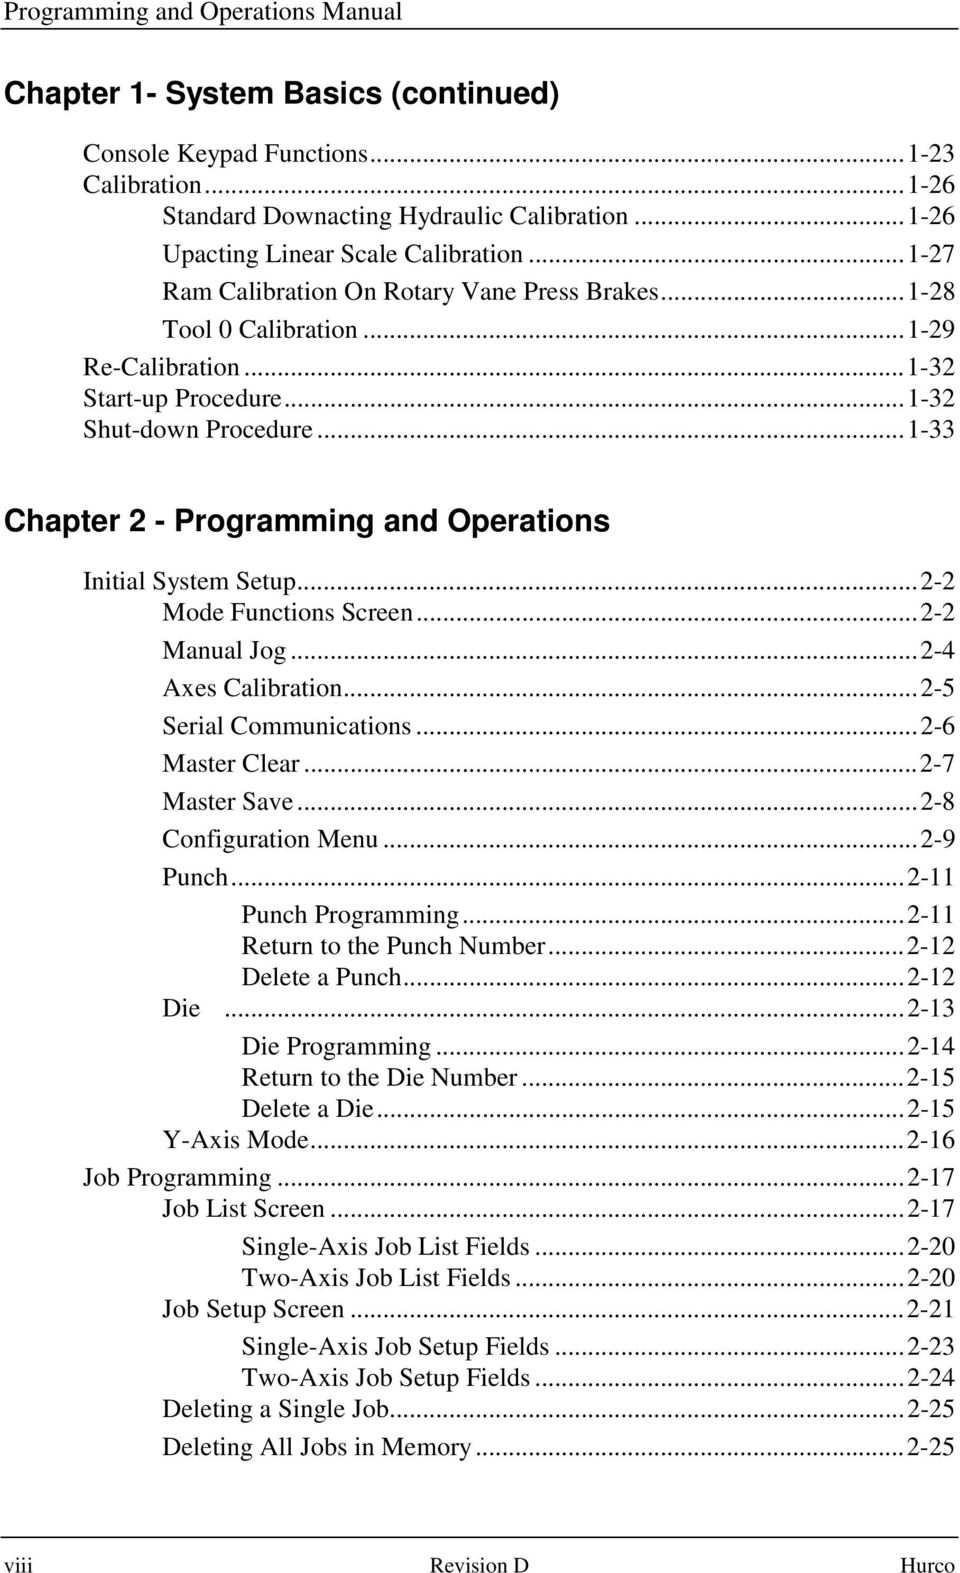 Programming and operations manual pdf for Punch list procedure